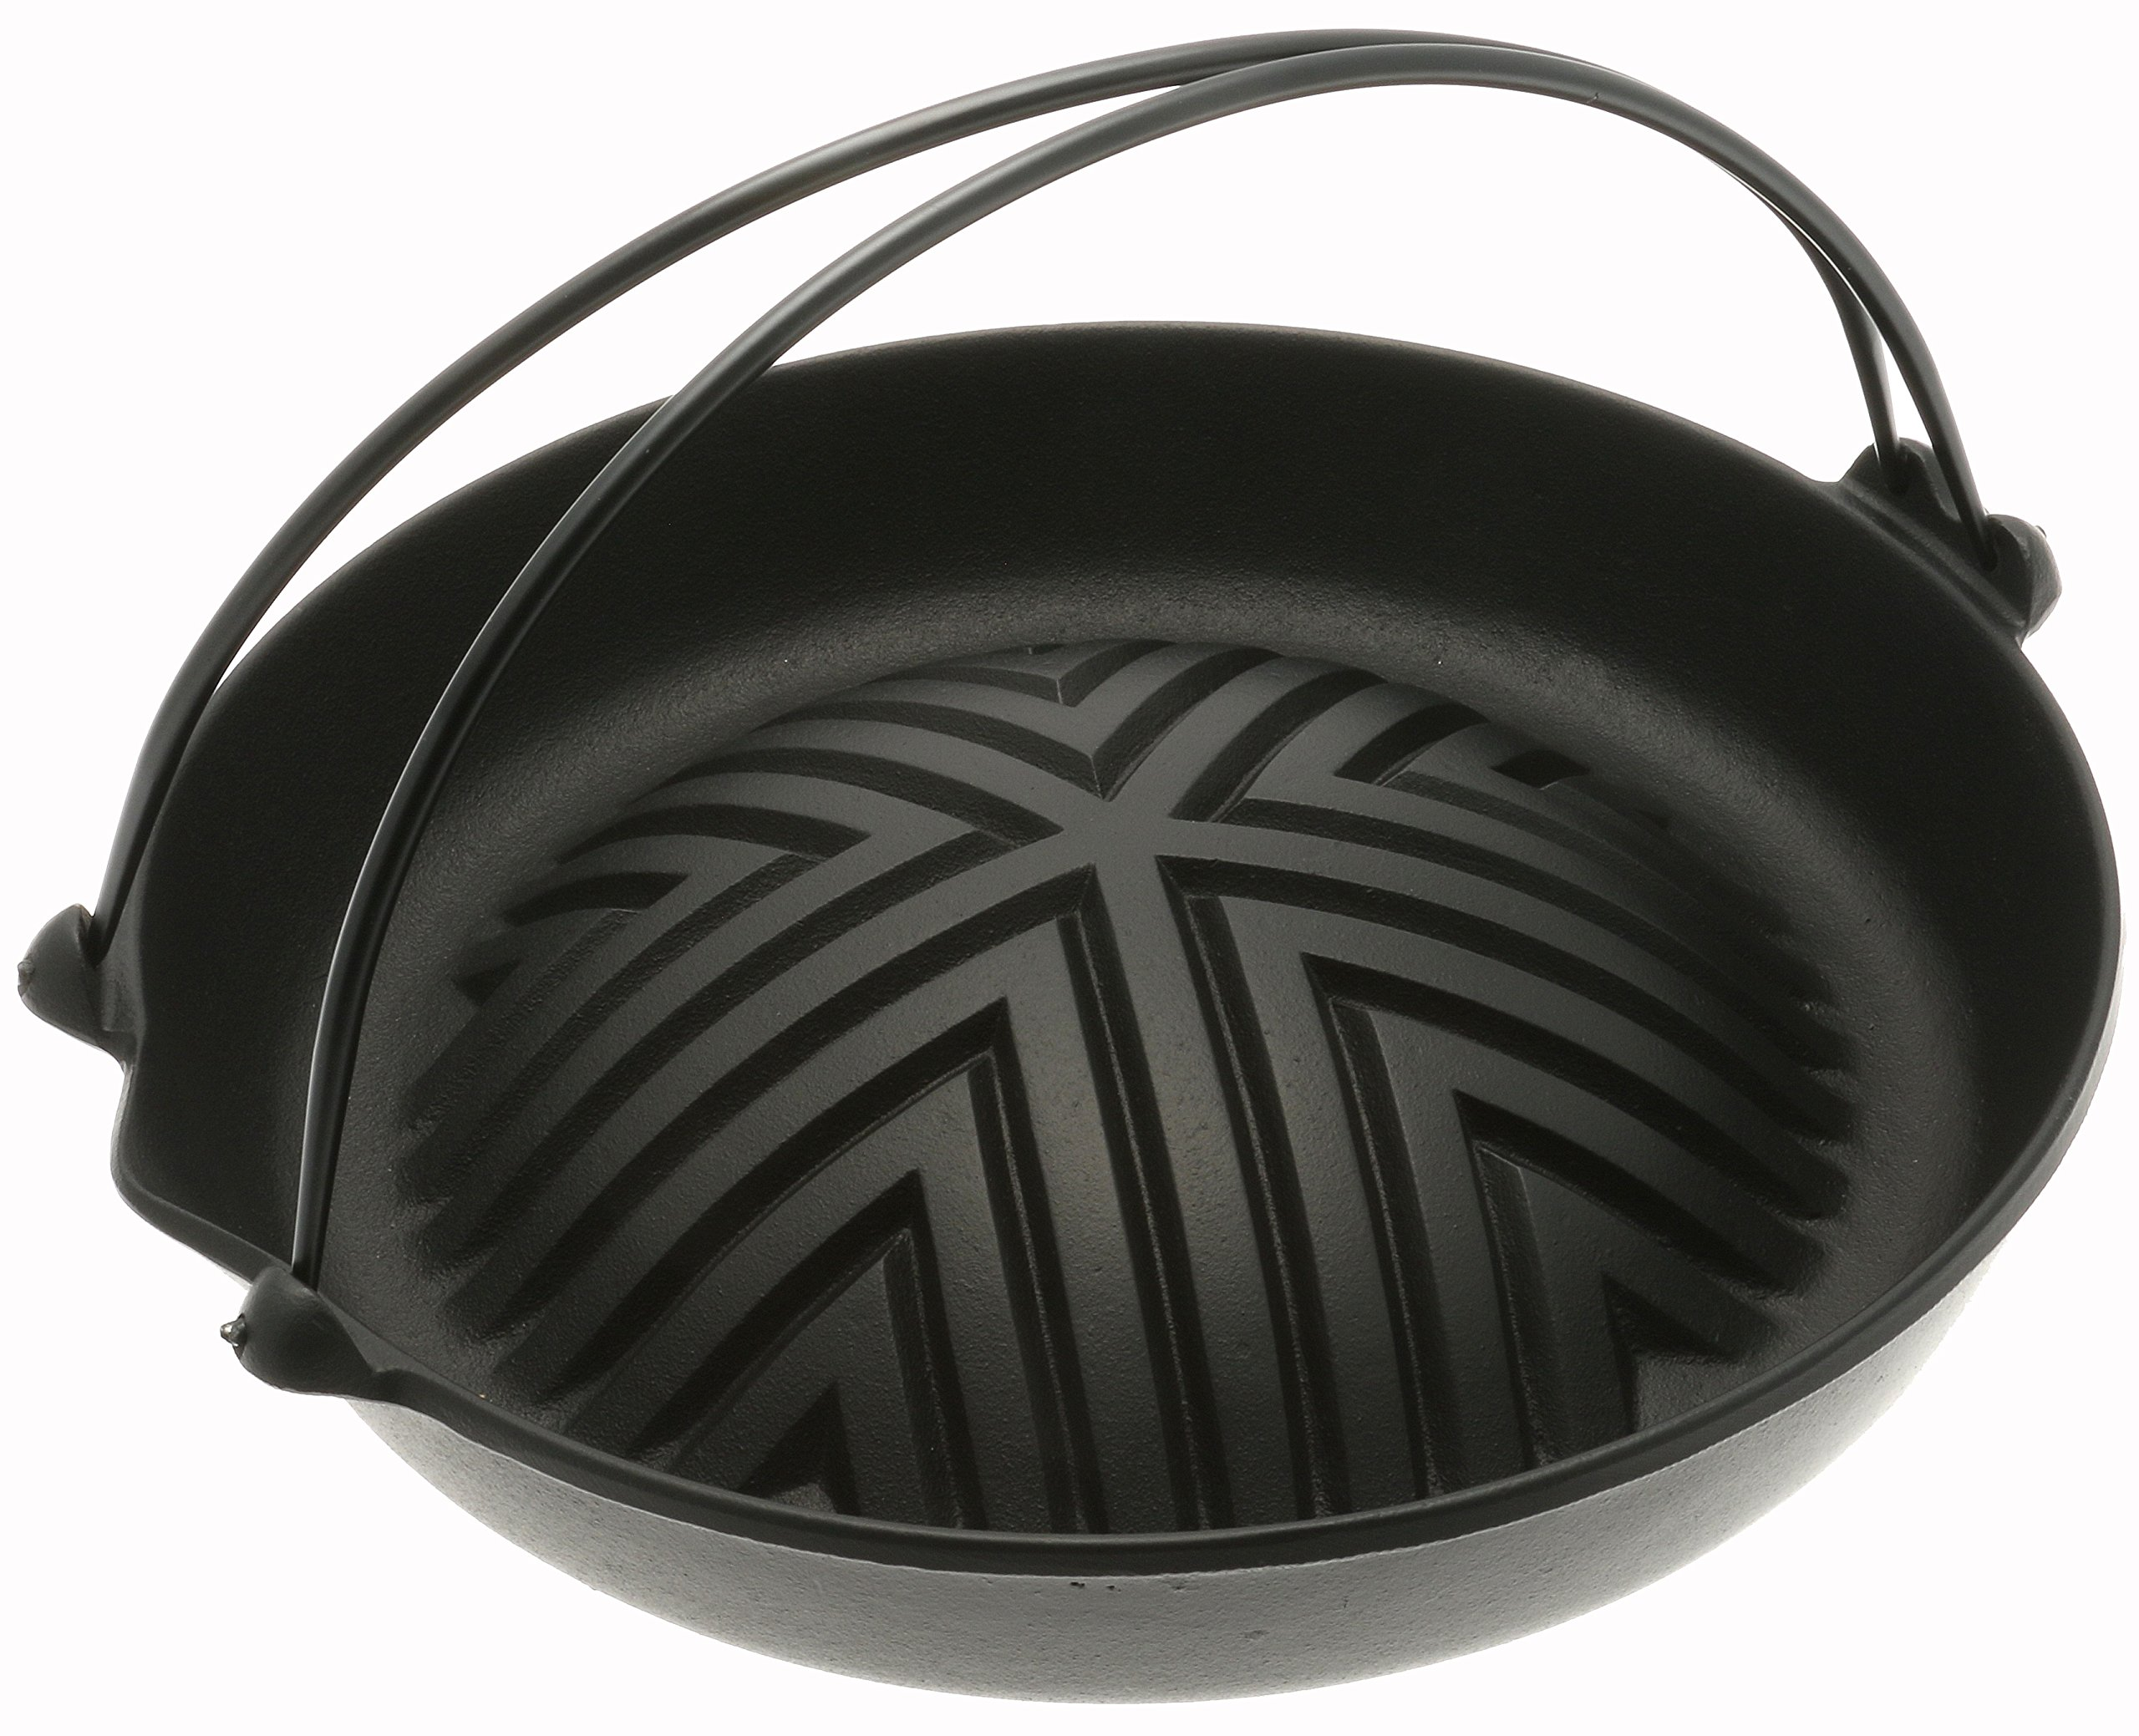 Iwachu Cast Iron Genghis Khan Grill Pan, Black by Iwachu